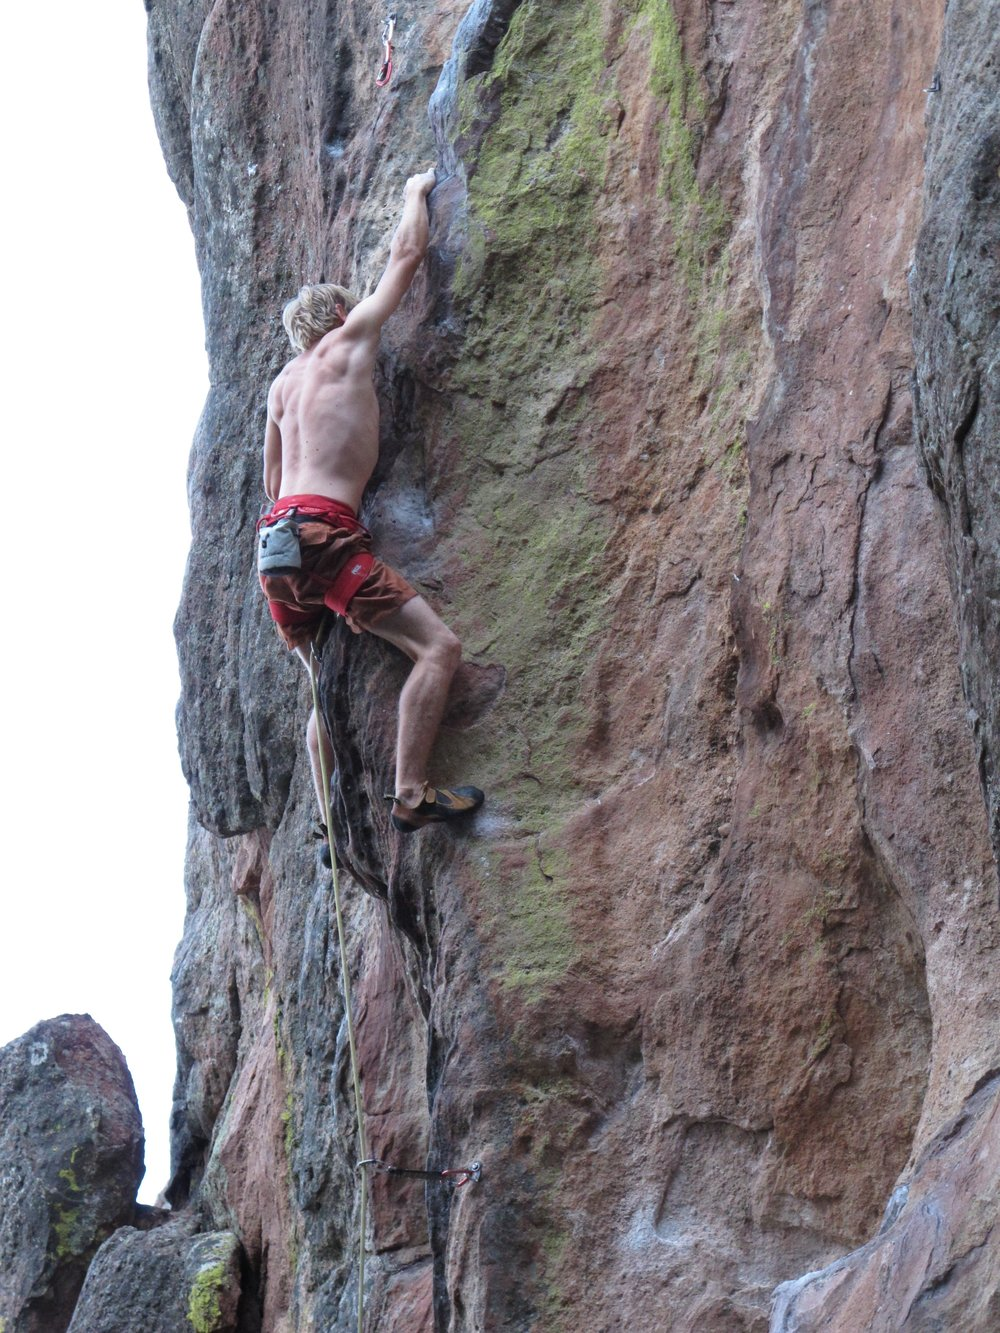 climbing-injury-risk-factors-prevention